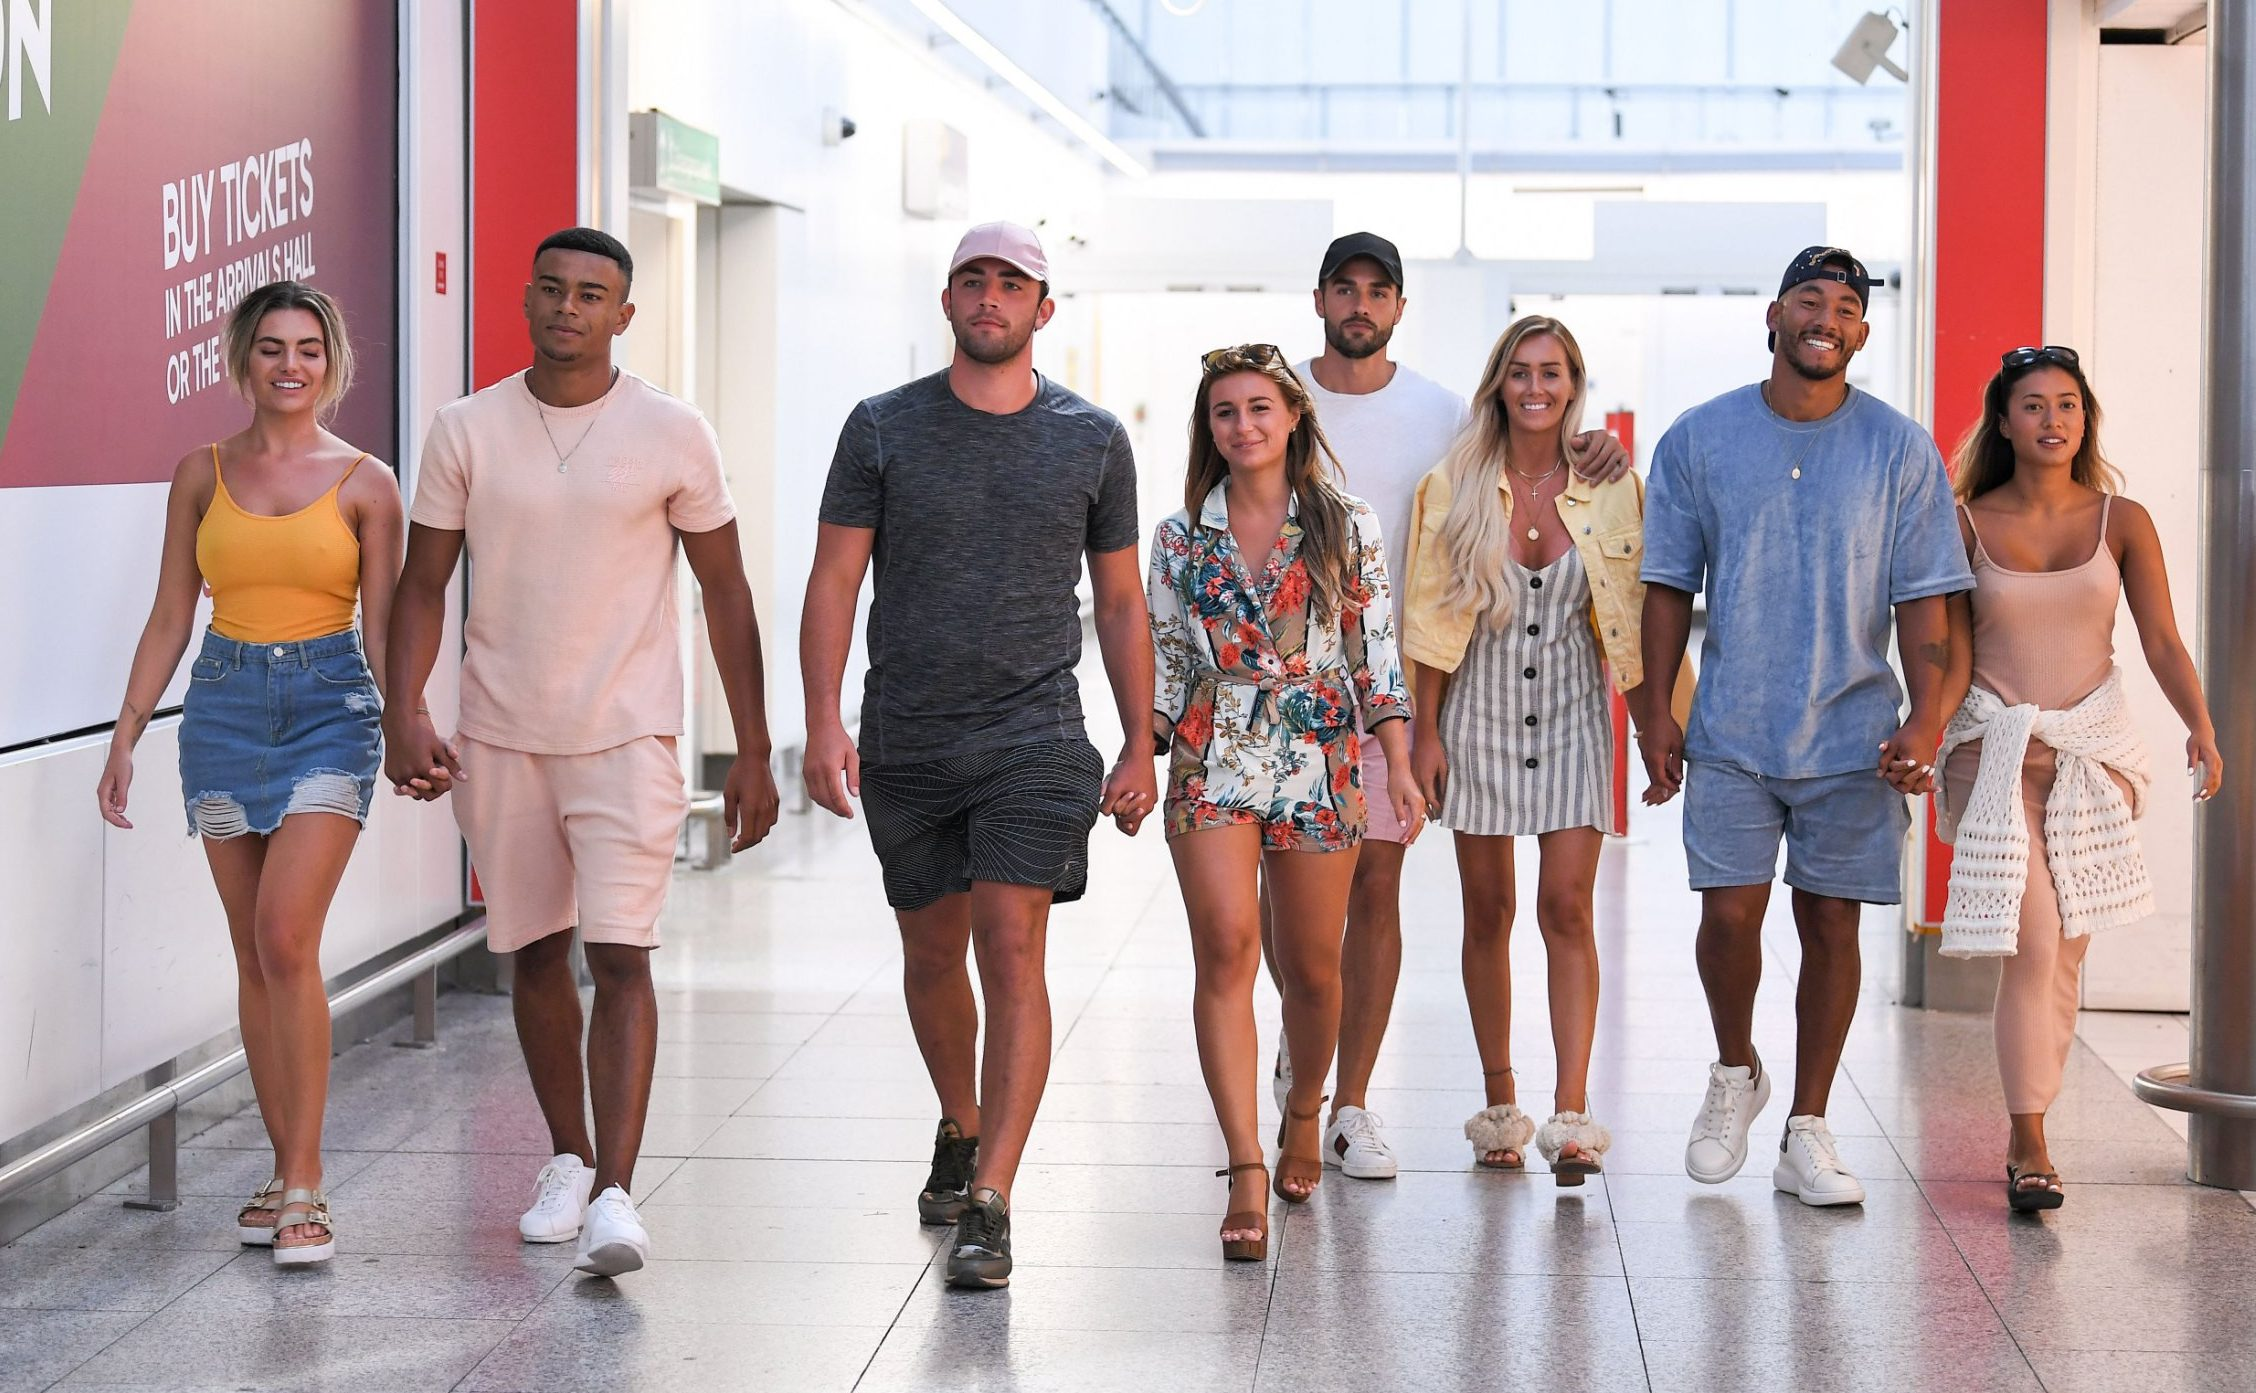 Editorial Use Only. No Merchandising. No Commercial Use Mandatory Credit: Photo by James Gourley/ITV/REX/Shutterstock (9774588bk) Megan Barton Hanson and Wes Nelson, Dani Dyer and Jack Fincham, Laura Anderson and Paul Knops and Kazimir Crossley and Josh Denzel arriving back at Stansted Airport after flying in from Palma de Mallorca 'Love Island' TV Show, Series 4, heading home, Majorca, Spain - 31 Jul 2018